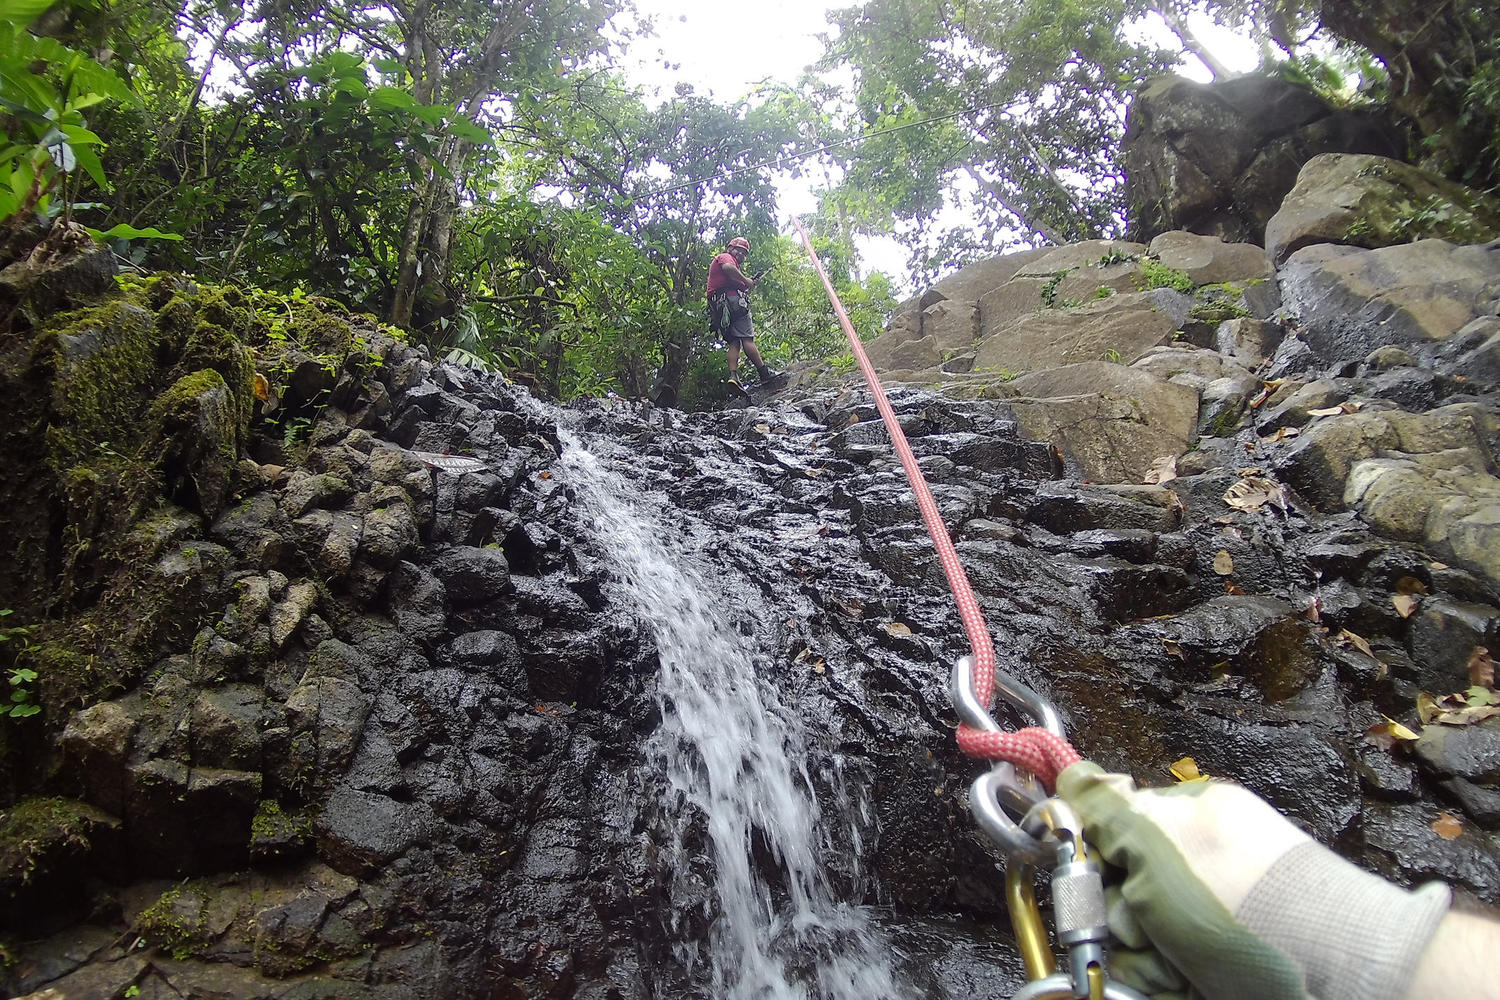 Descending Turrialba's waterfalls by means of a rappel